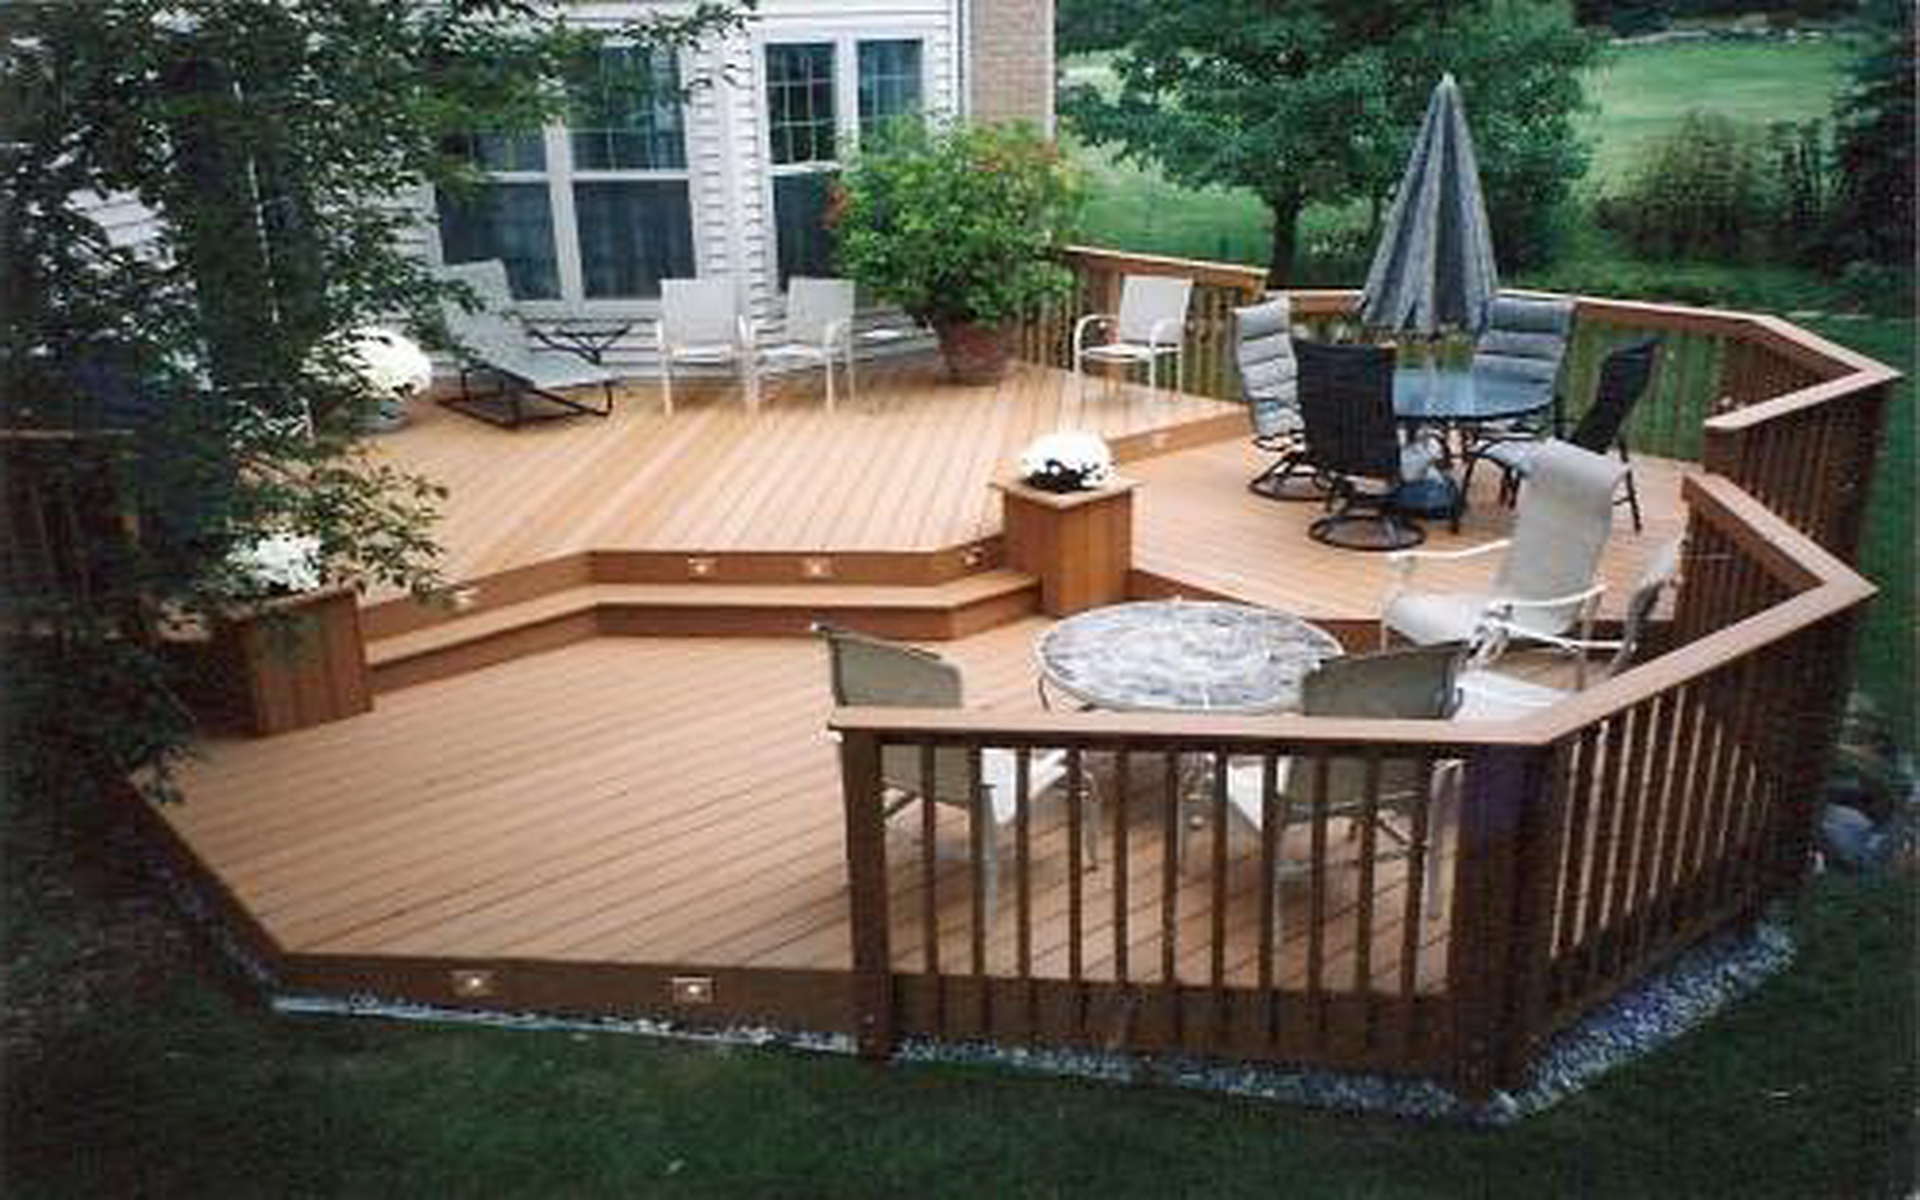 Wood deck ideas fancy backyard decks decking for back garden view in gallery wooden decks for small backyards baanklon Image collections